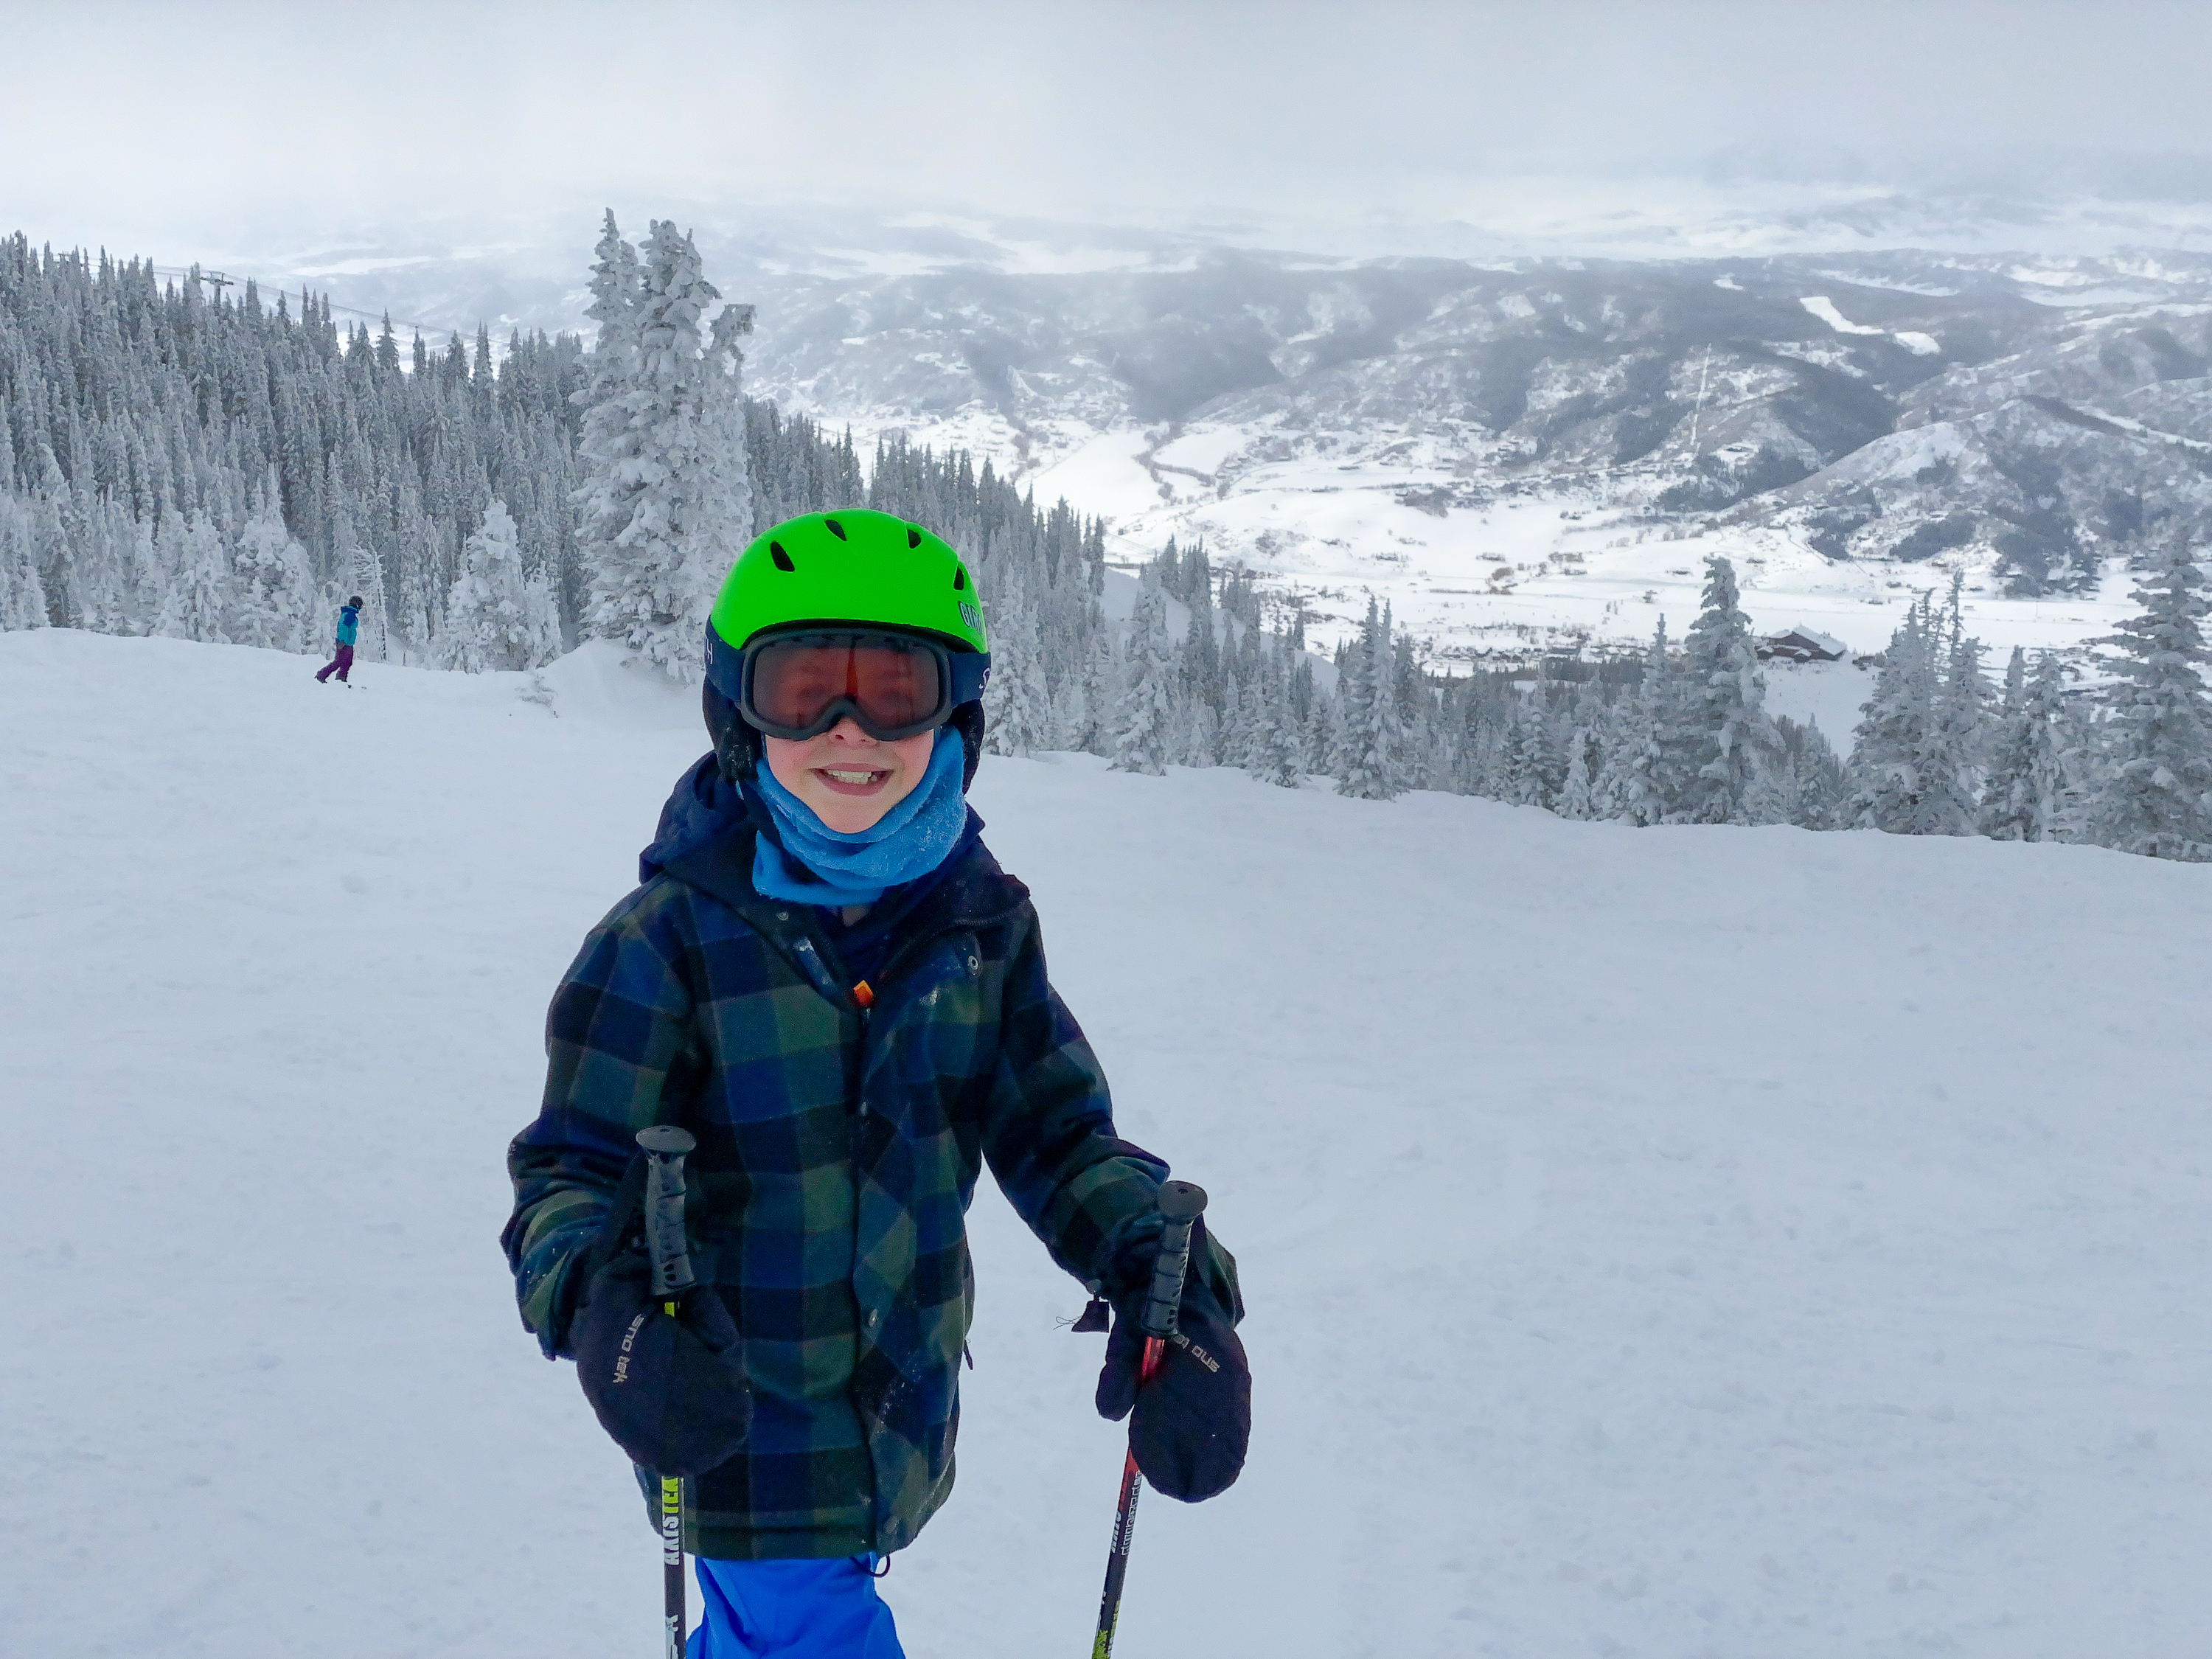 Skiing at Steamboat